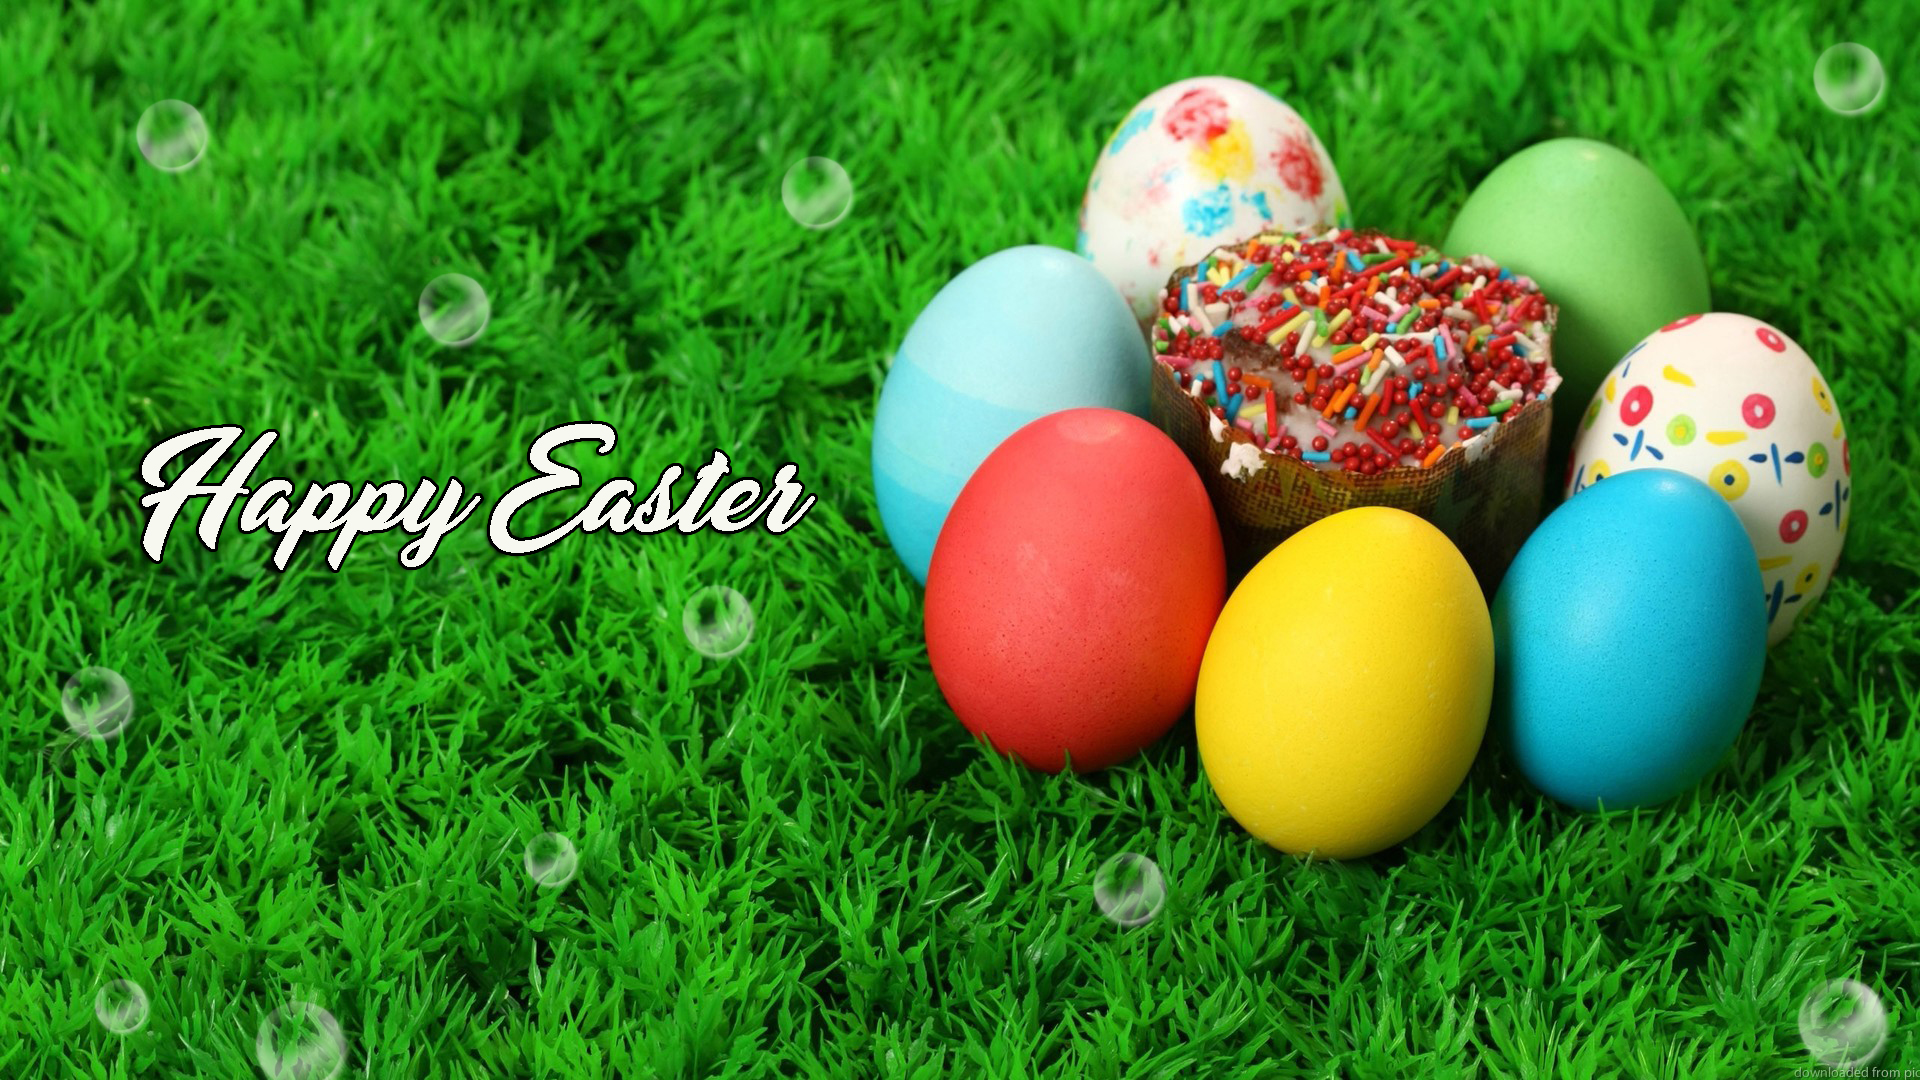 Easter-eggs-on-grass-card